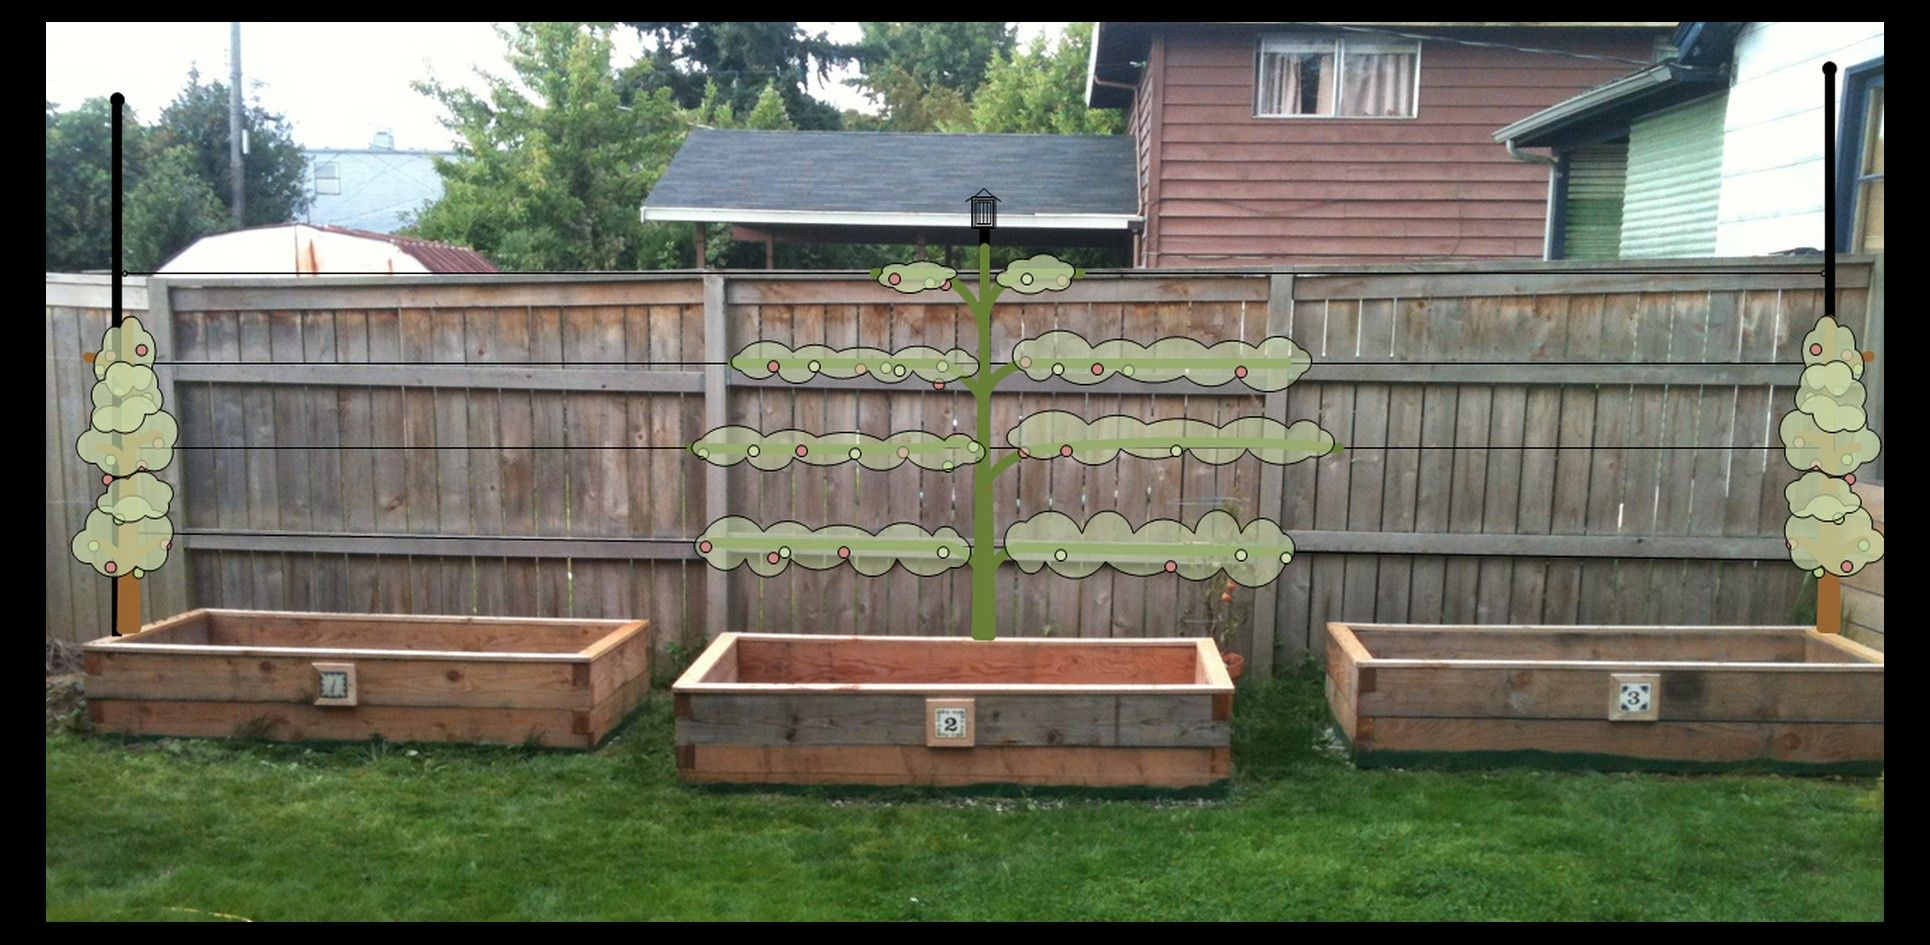 Awesome Vertical Gardening Or Boxed Planters Fence Garden Planters